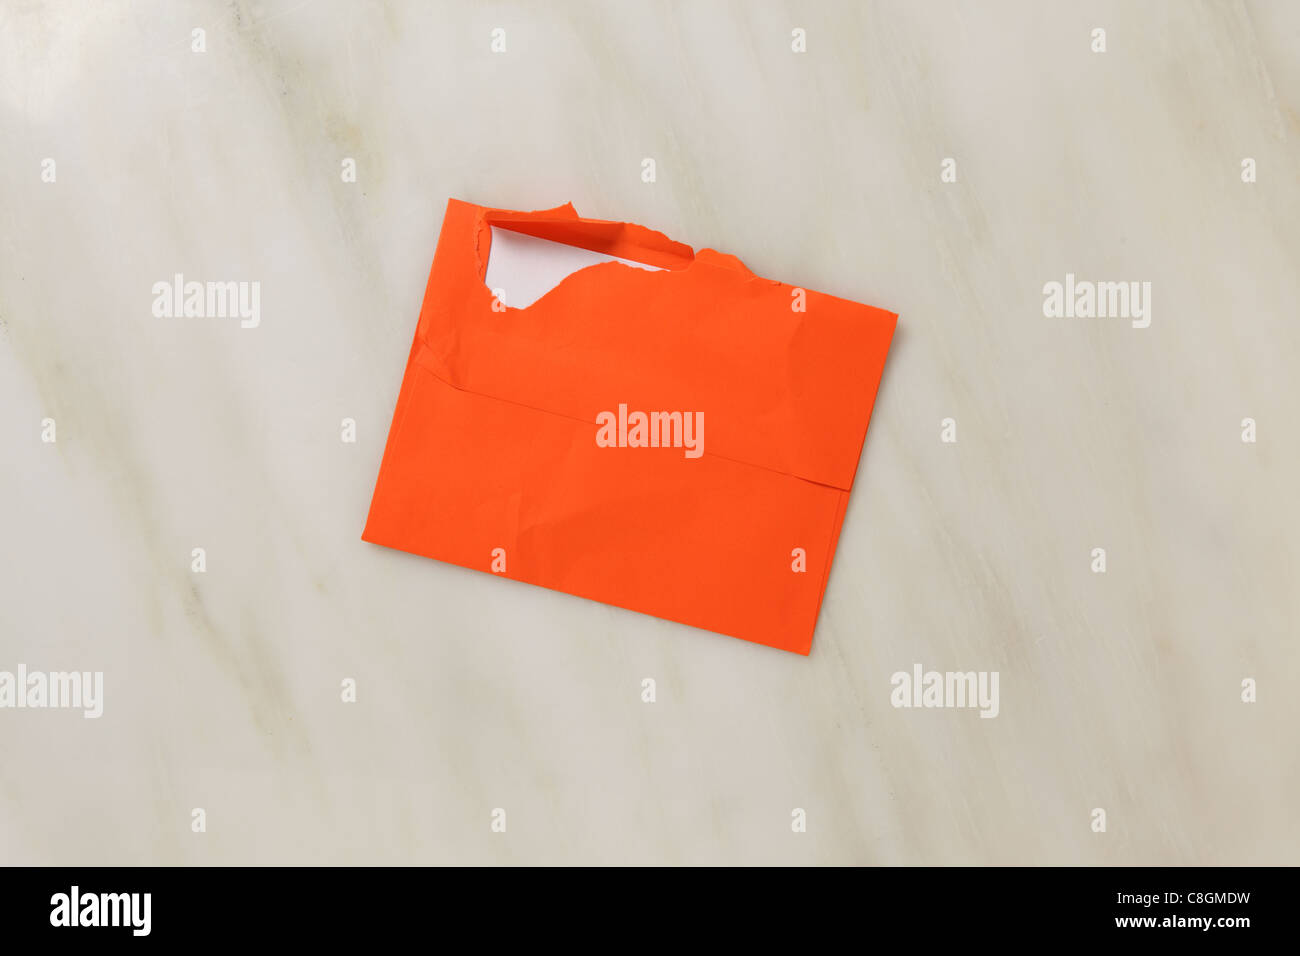 A used and slightly torn open postal envelope on a marble surface. Bright orange colored envelope - Stock Image